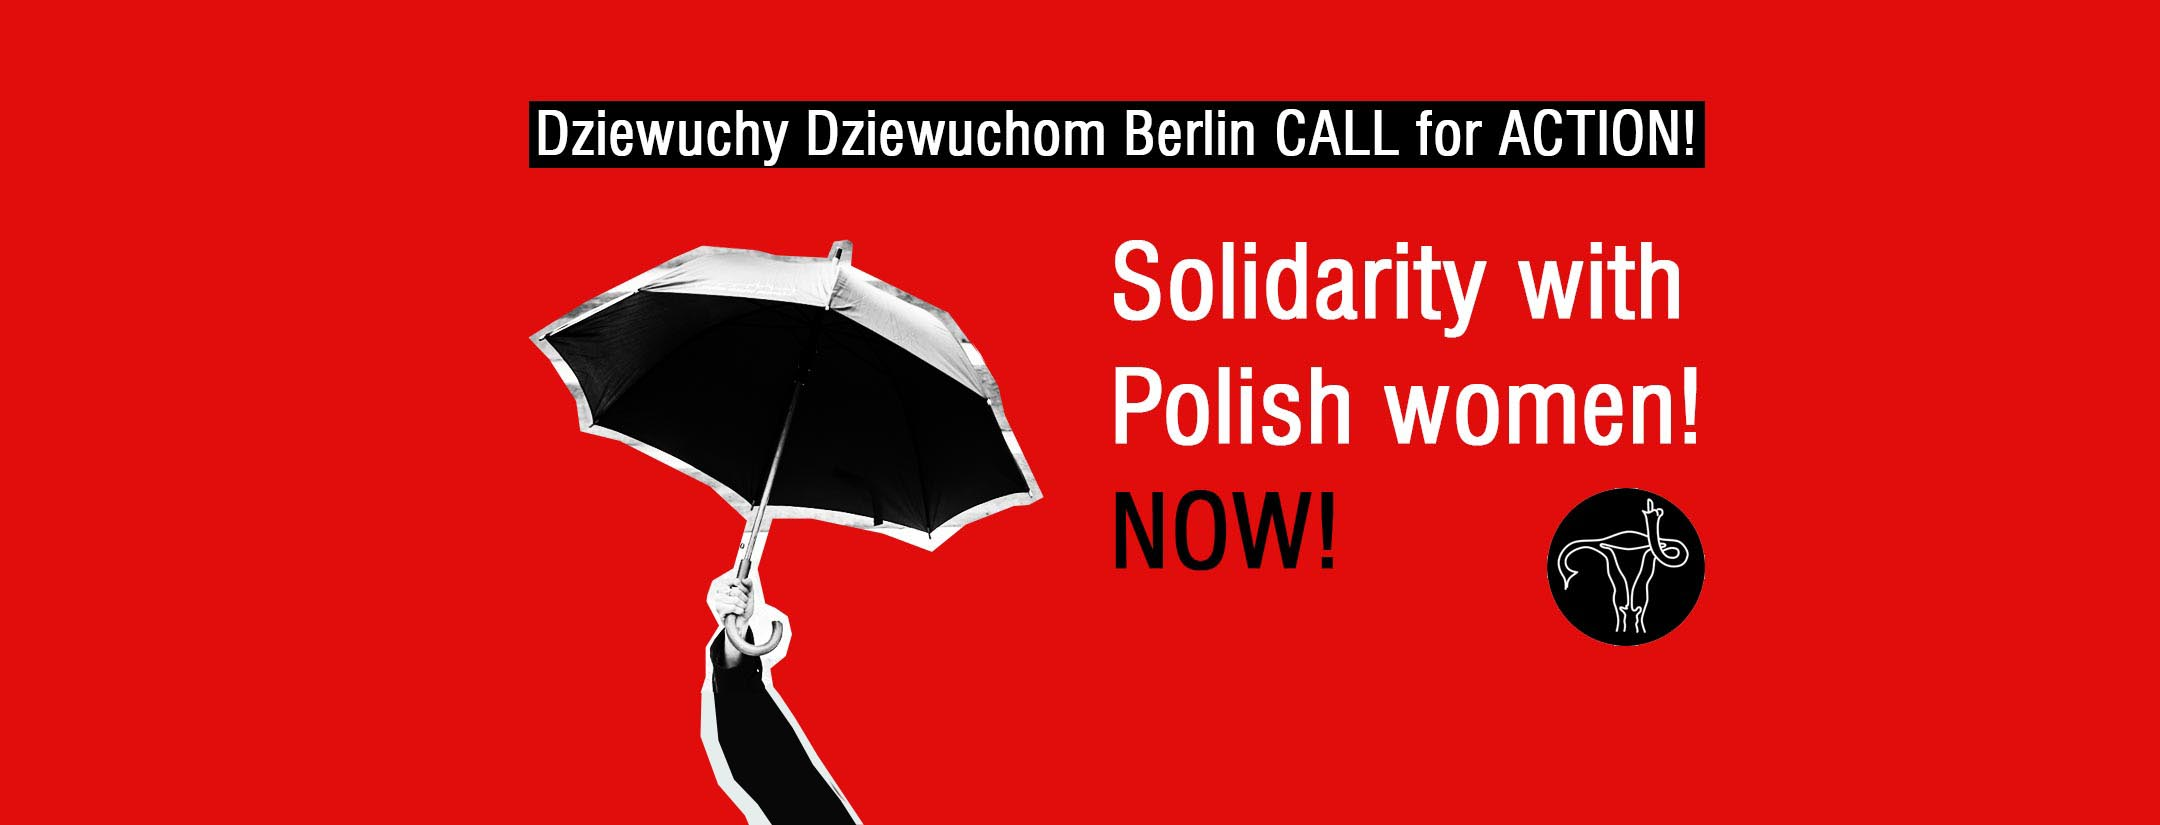 Solidarity with Polish women! NOW!